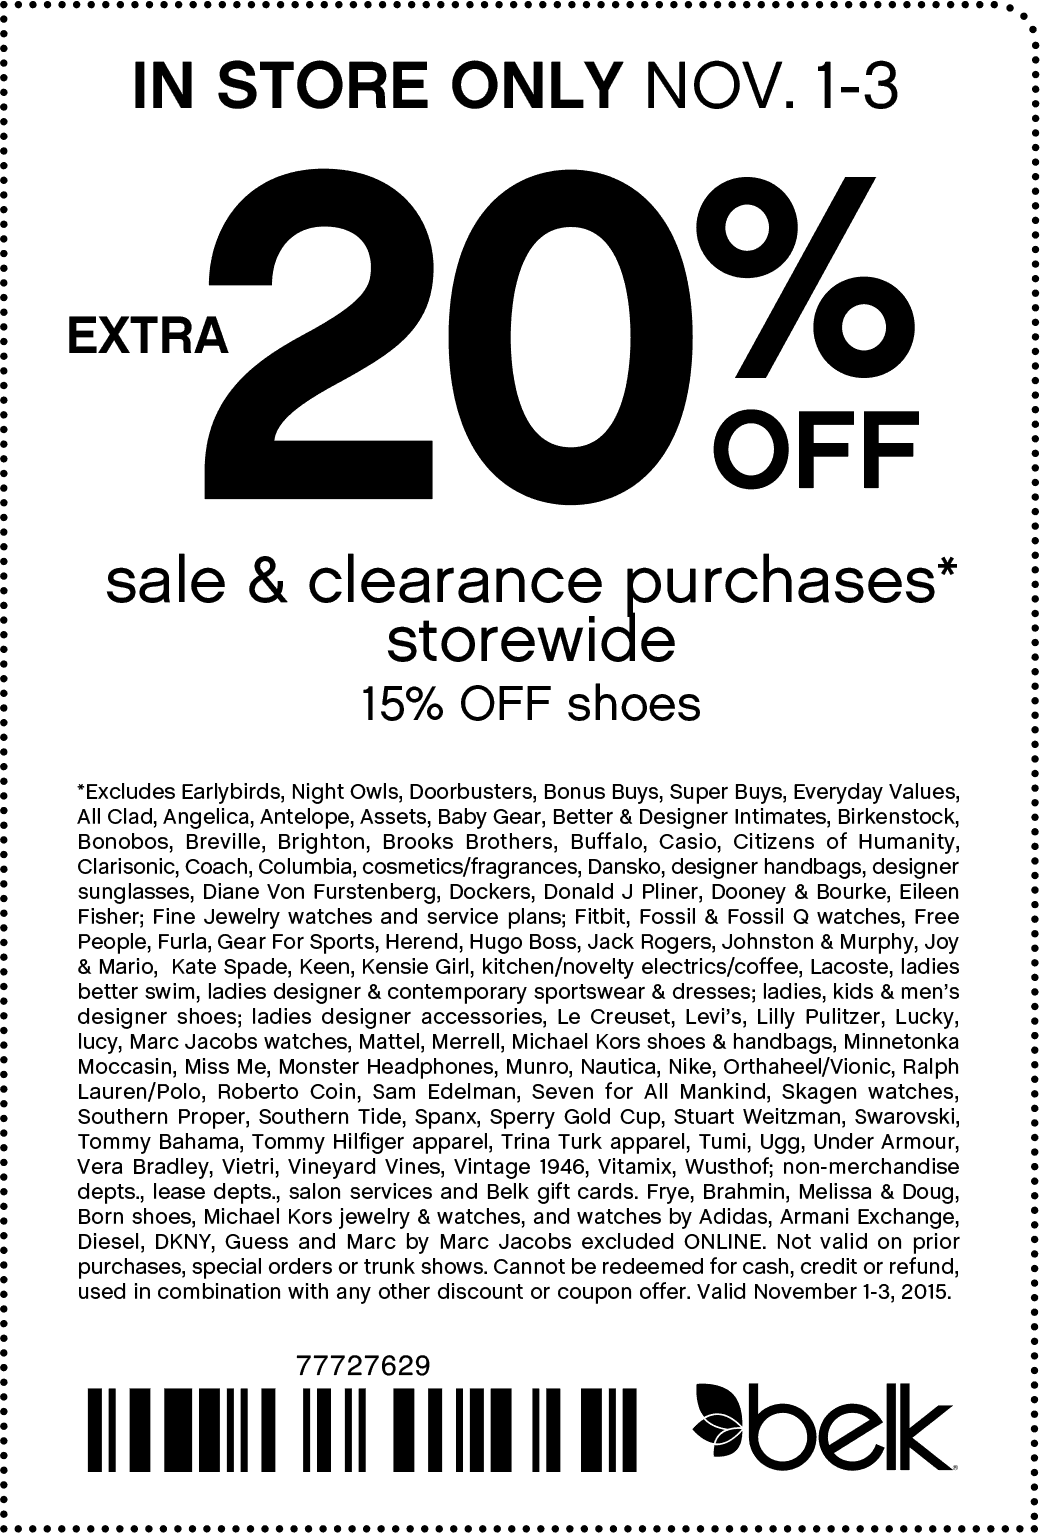 Belk Coupon May 2018 Extra 20% off sale & clearance at Belk